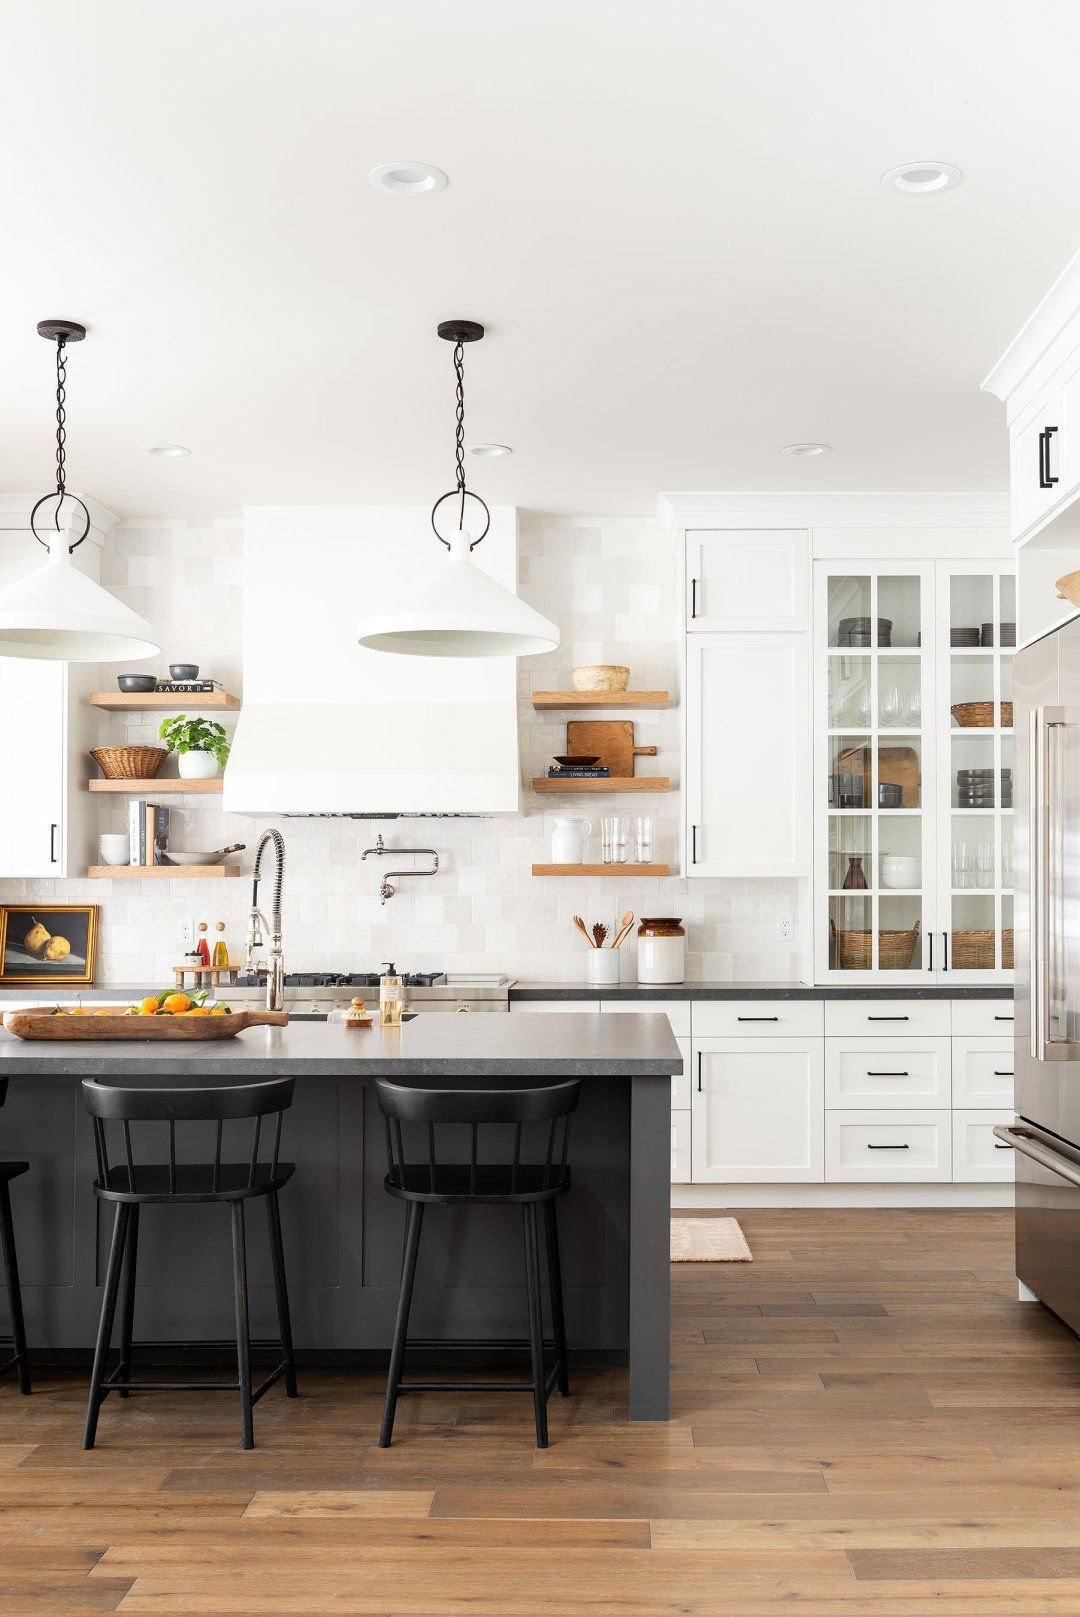 How To Design A Kitchen Remodel With Free Software